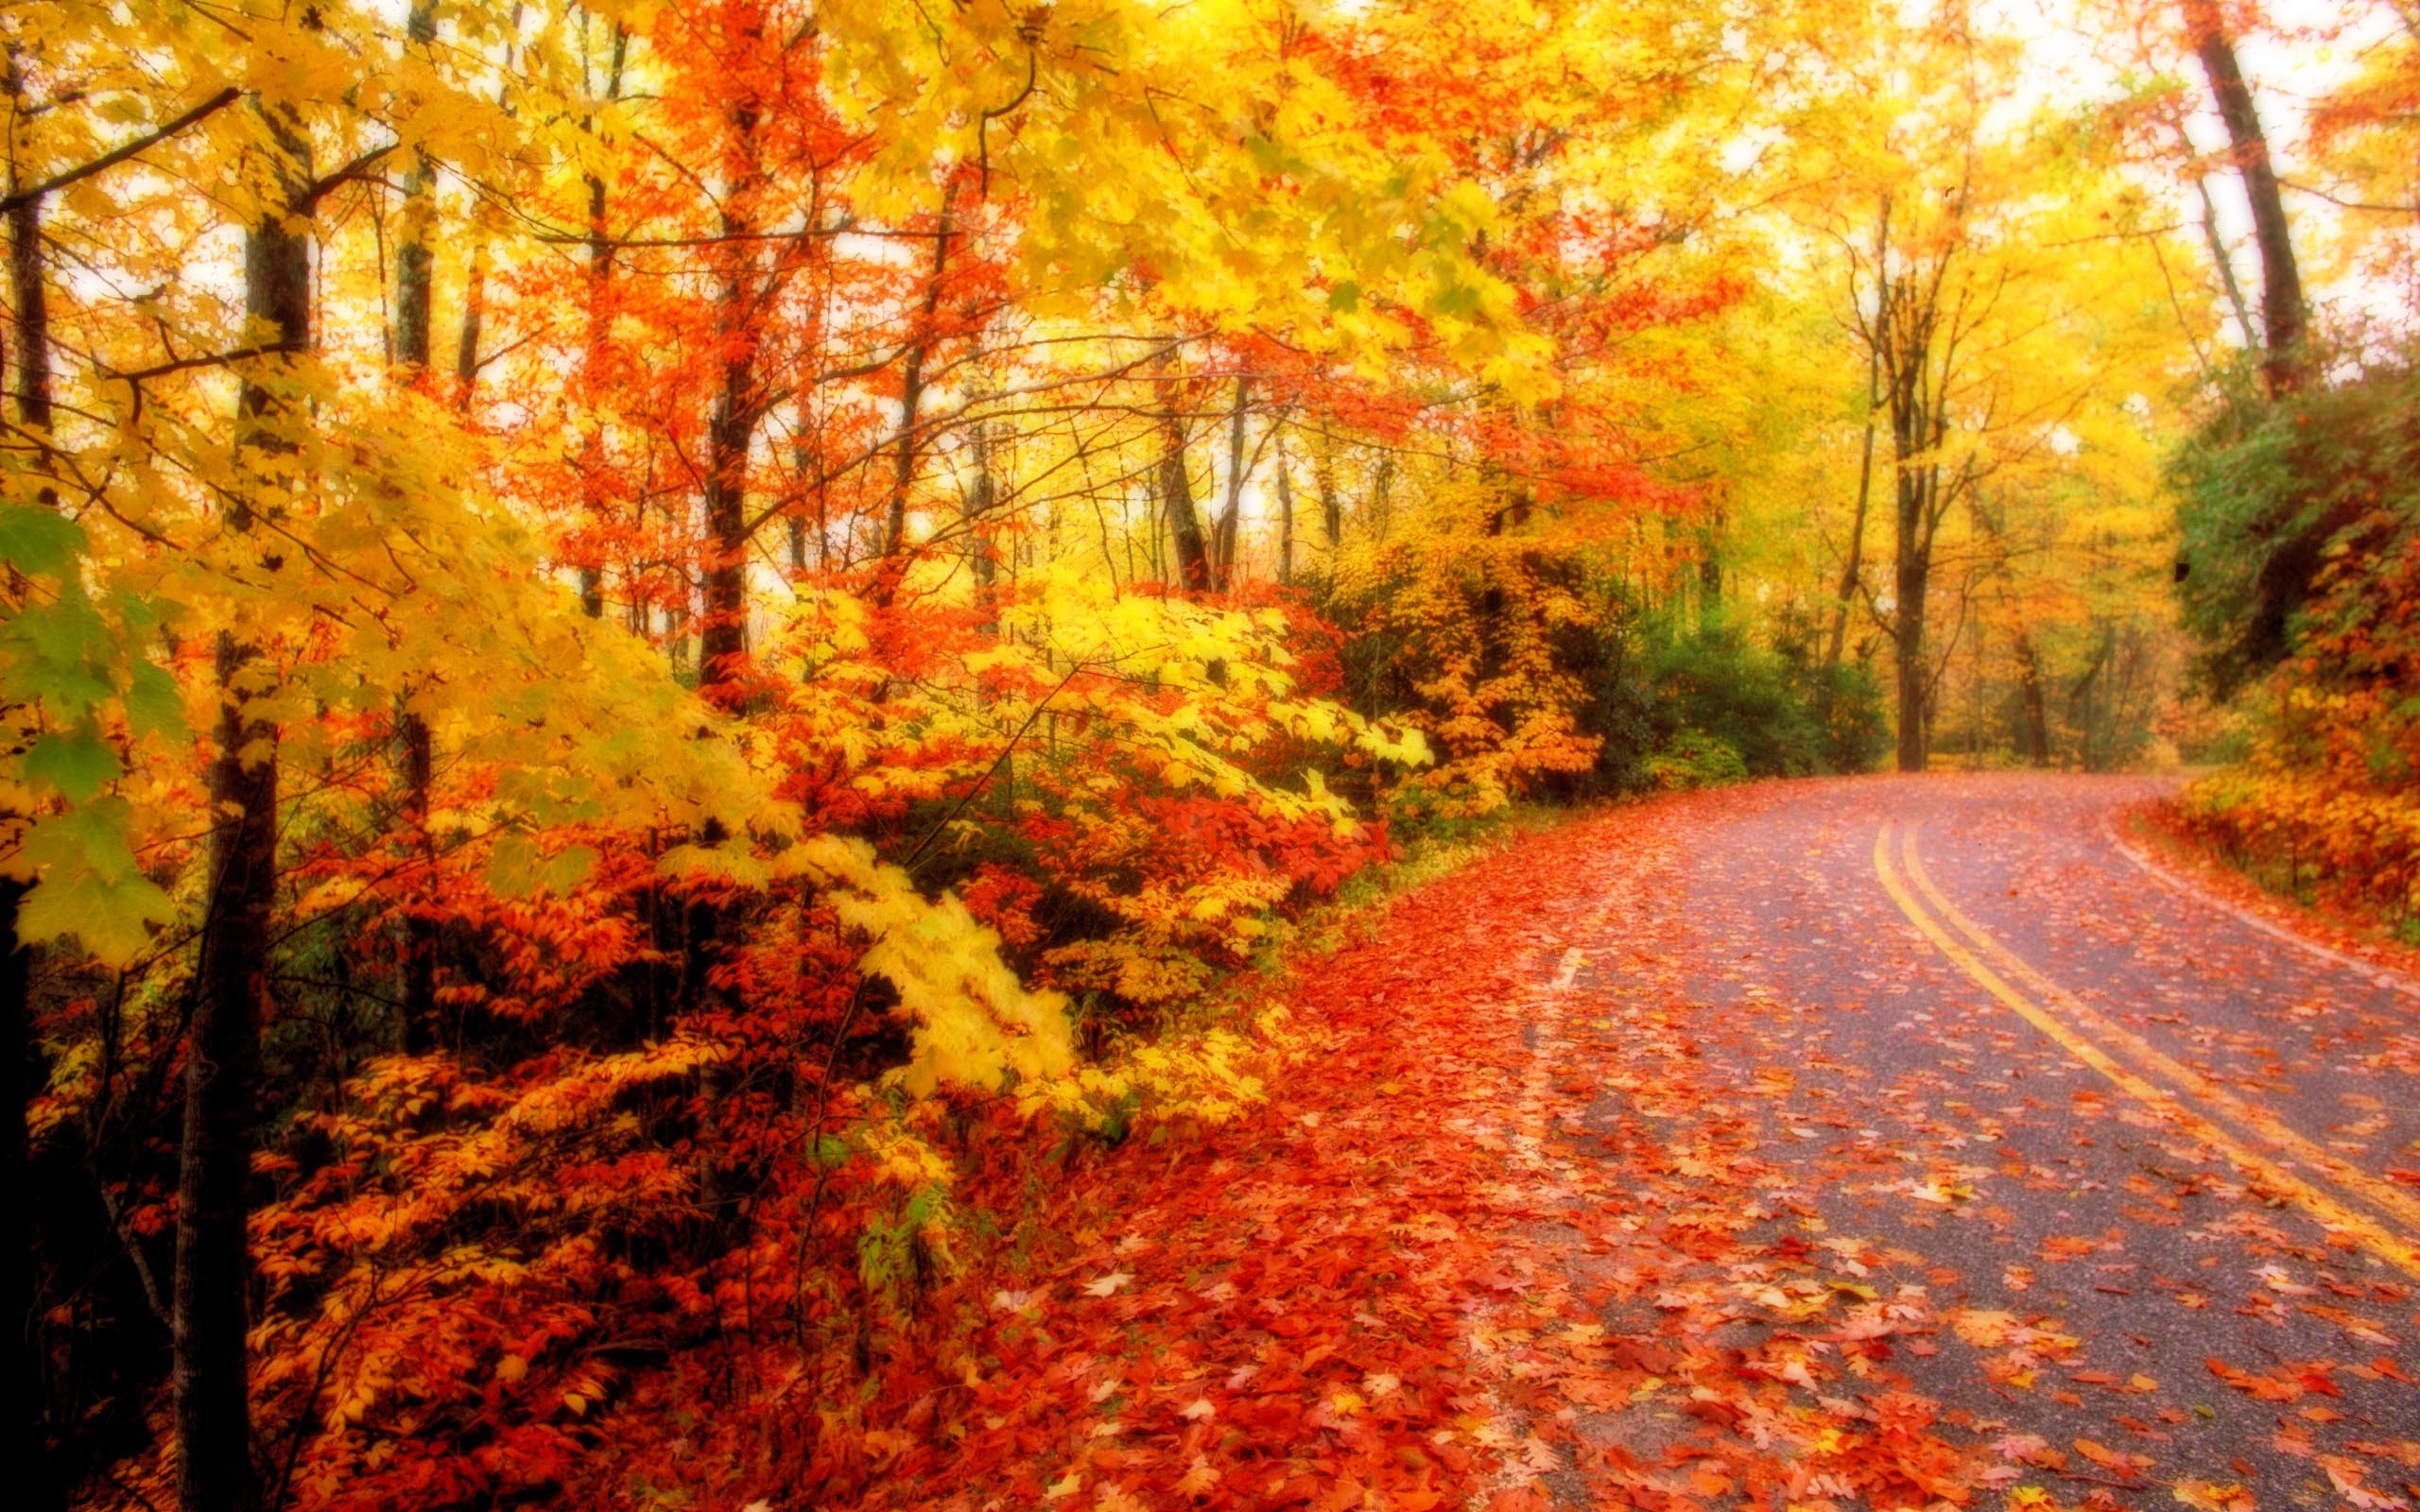 Free Download Download Fall Foliage Wallpapers 2560x1600 For Your Desktop Mobile Tablet Explore 69 Fall Foliage Wallpapers Fall Colors Desktop Wallpaper Free Fall Foliage Wallpaper Fall Foliage Wallpaper For Desktop